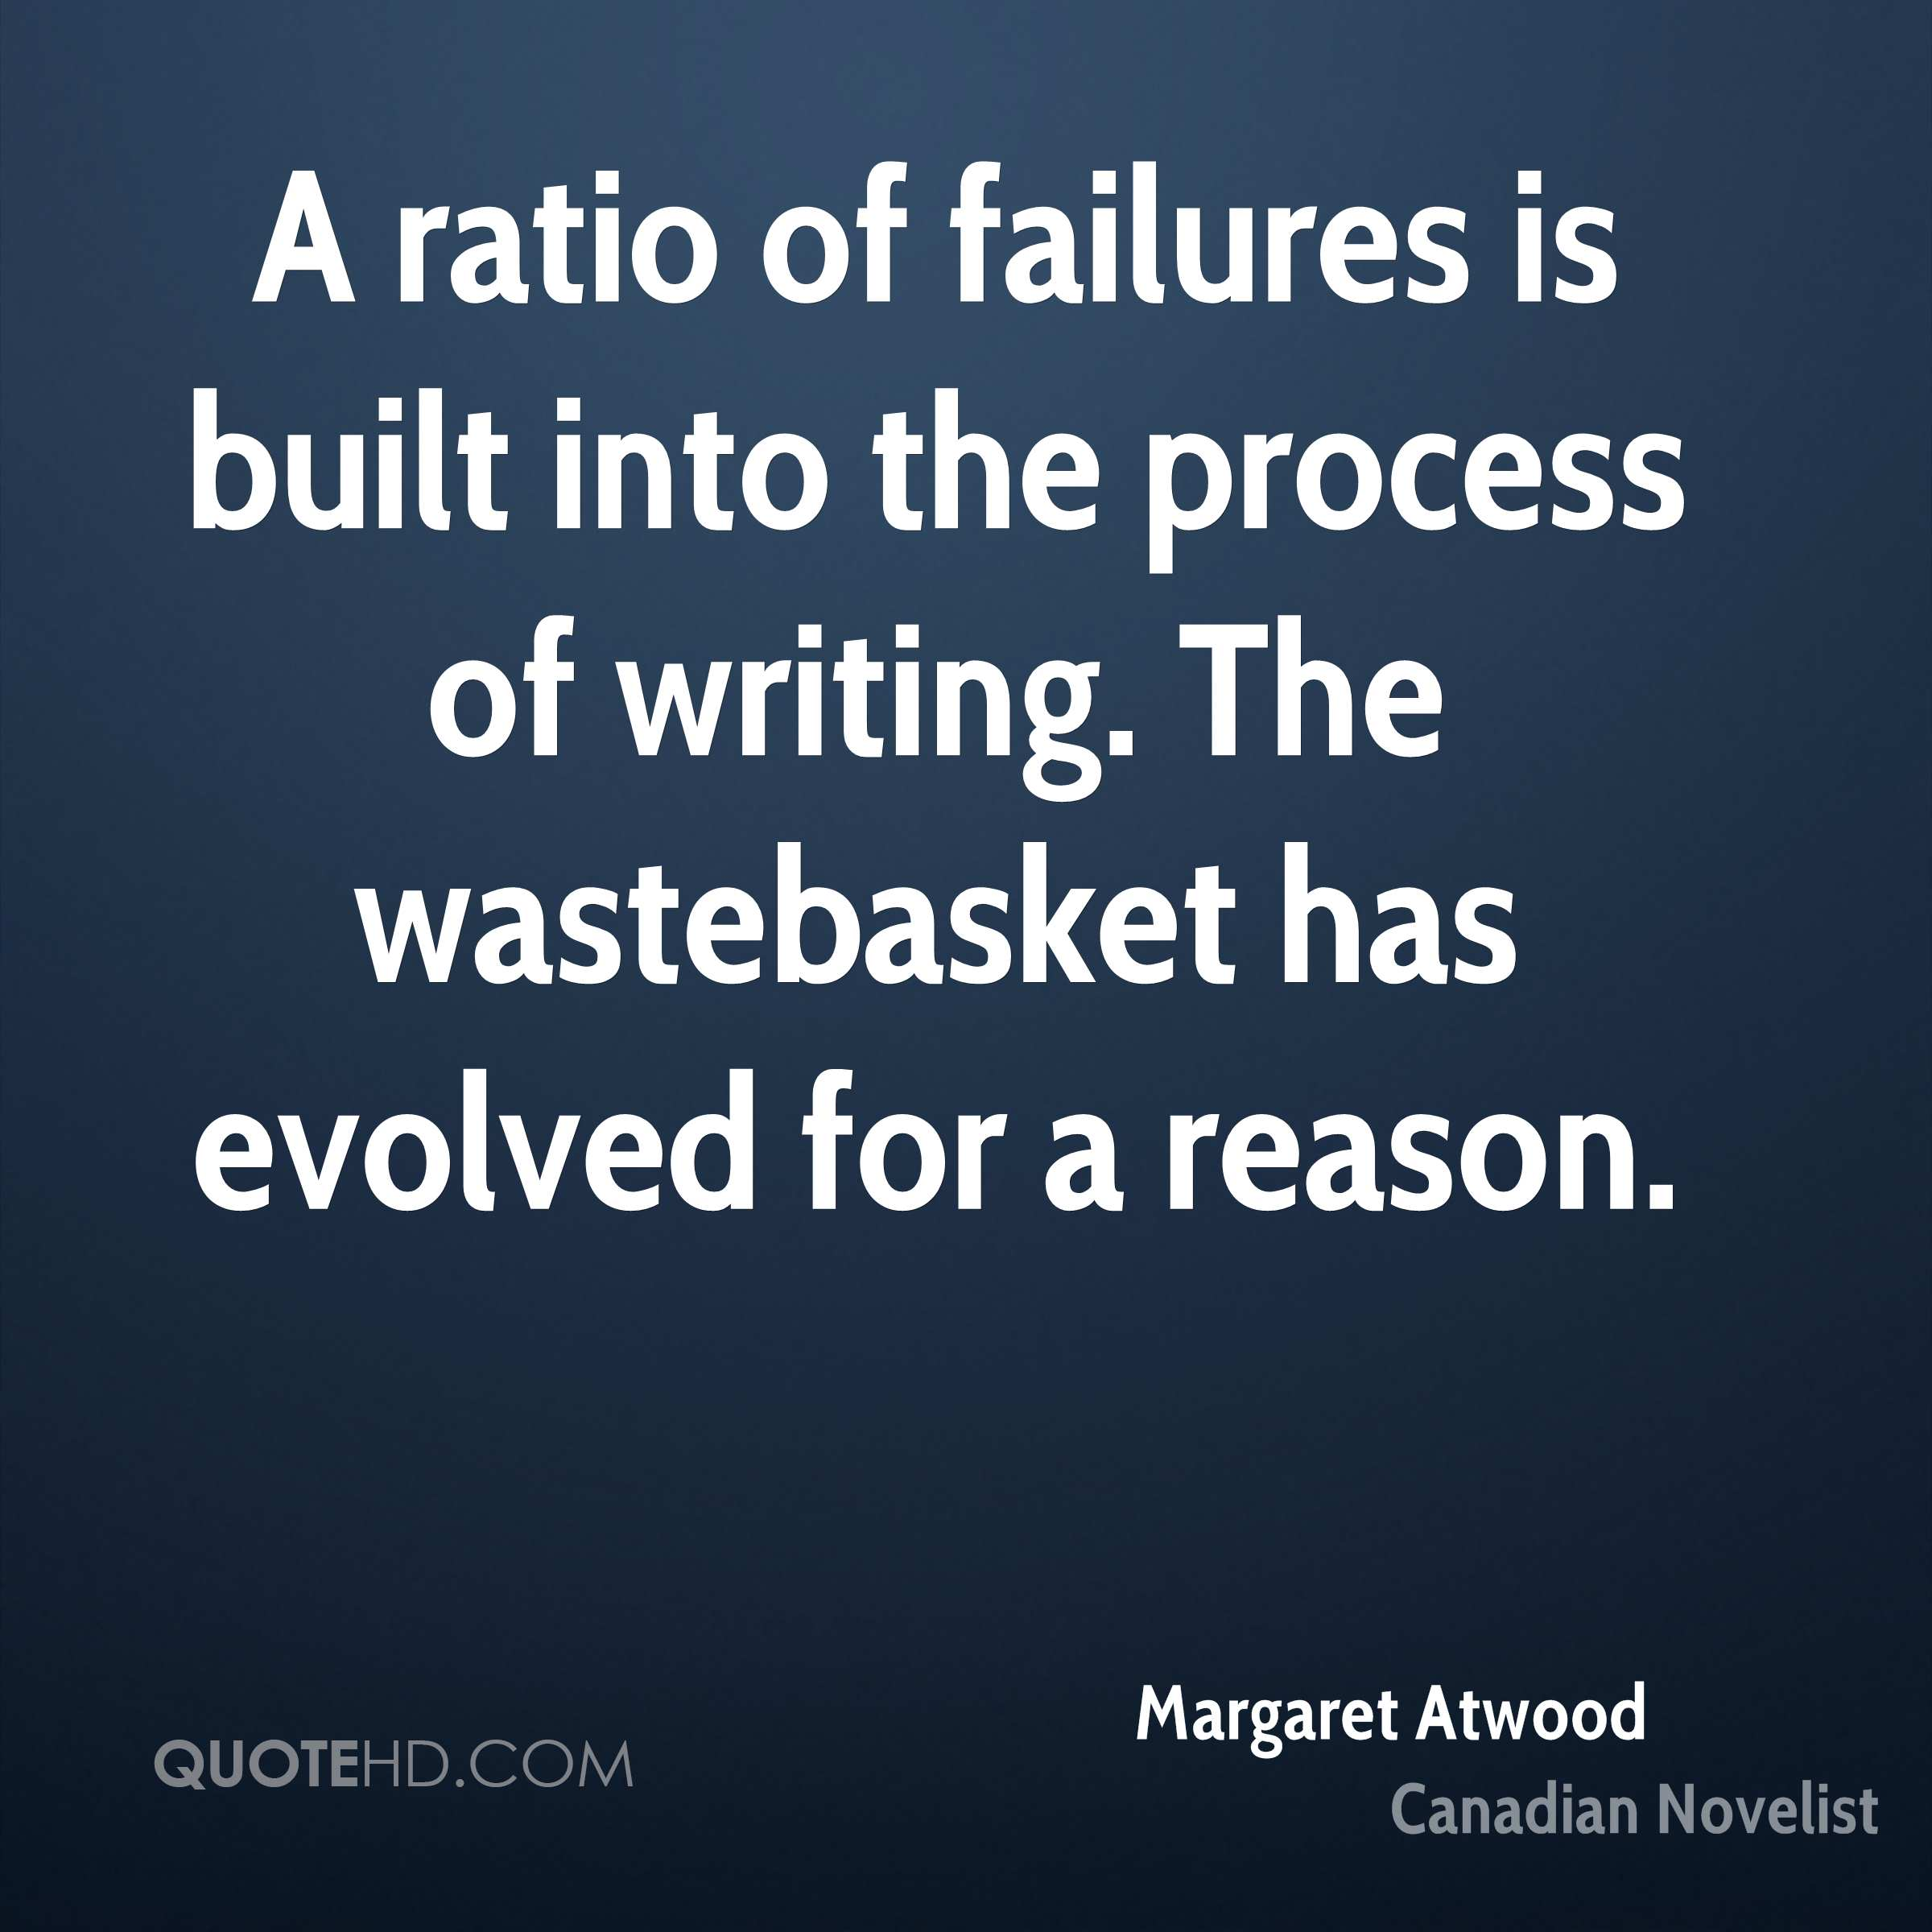 A ratio of failures is built into the process of writing. The wastebasket has evolved for a reason.